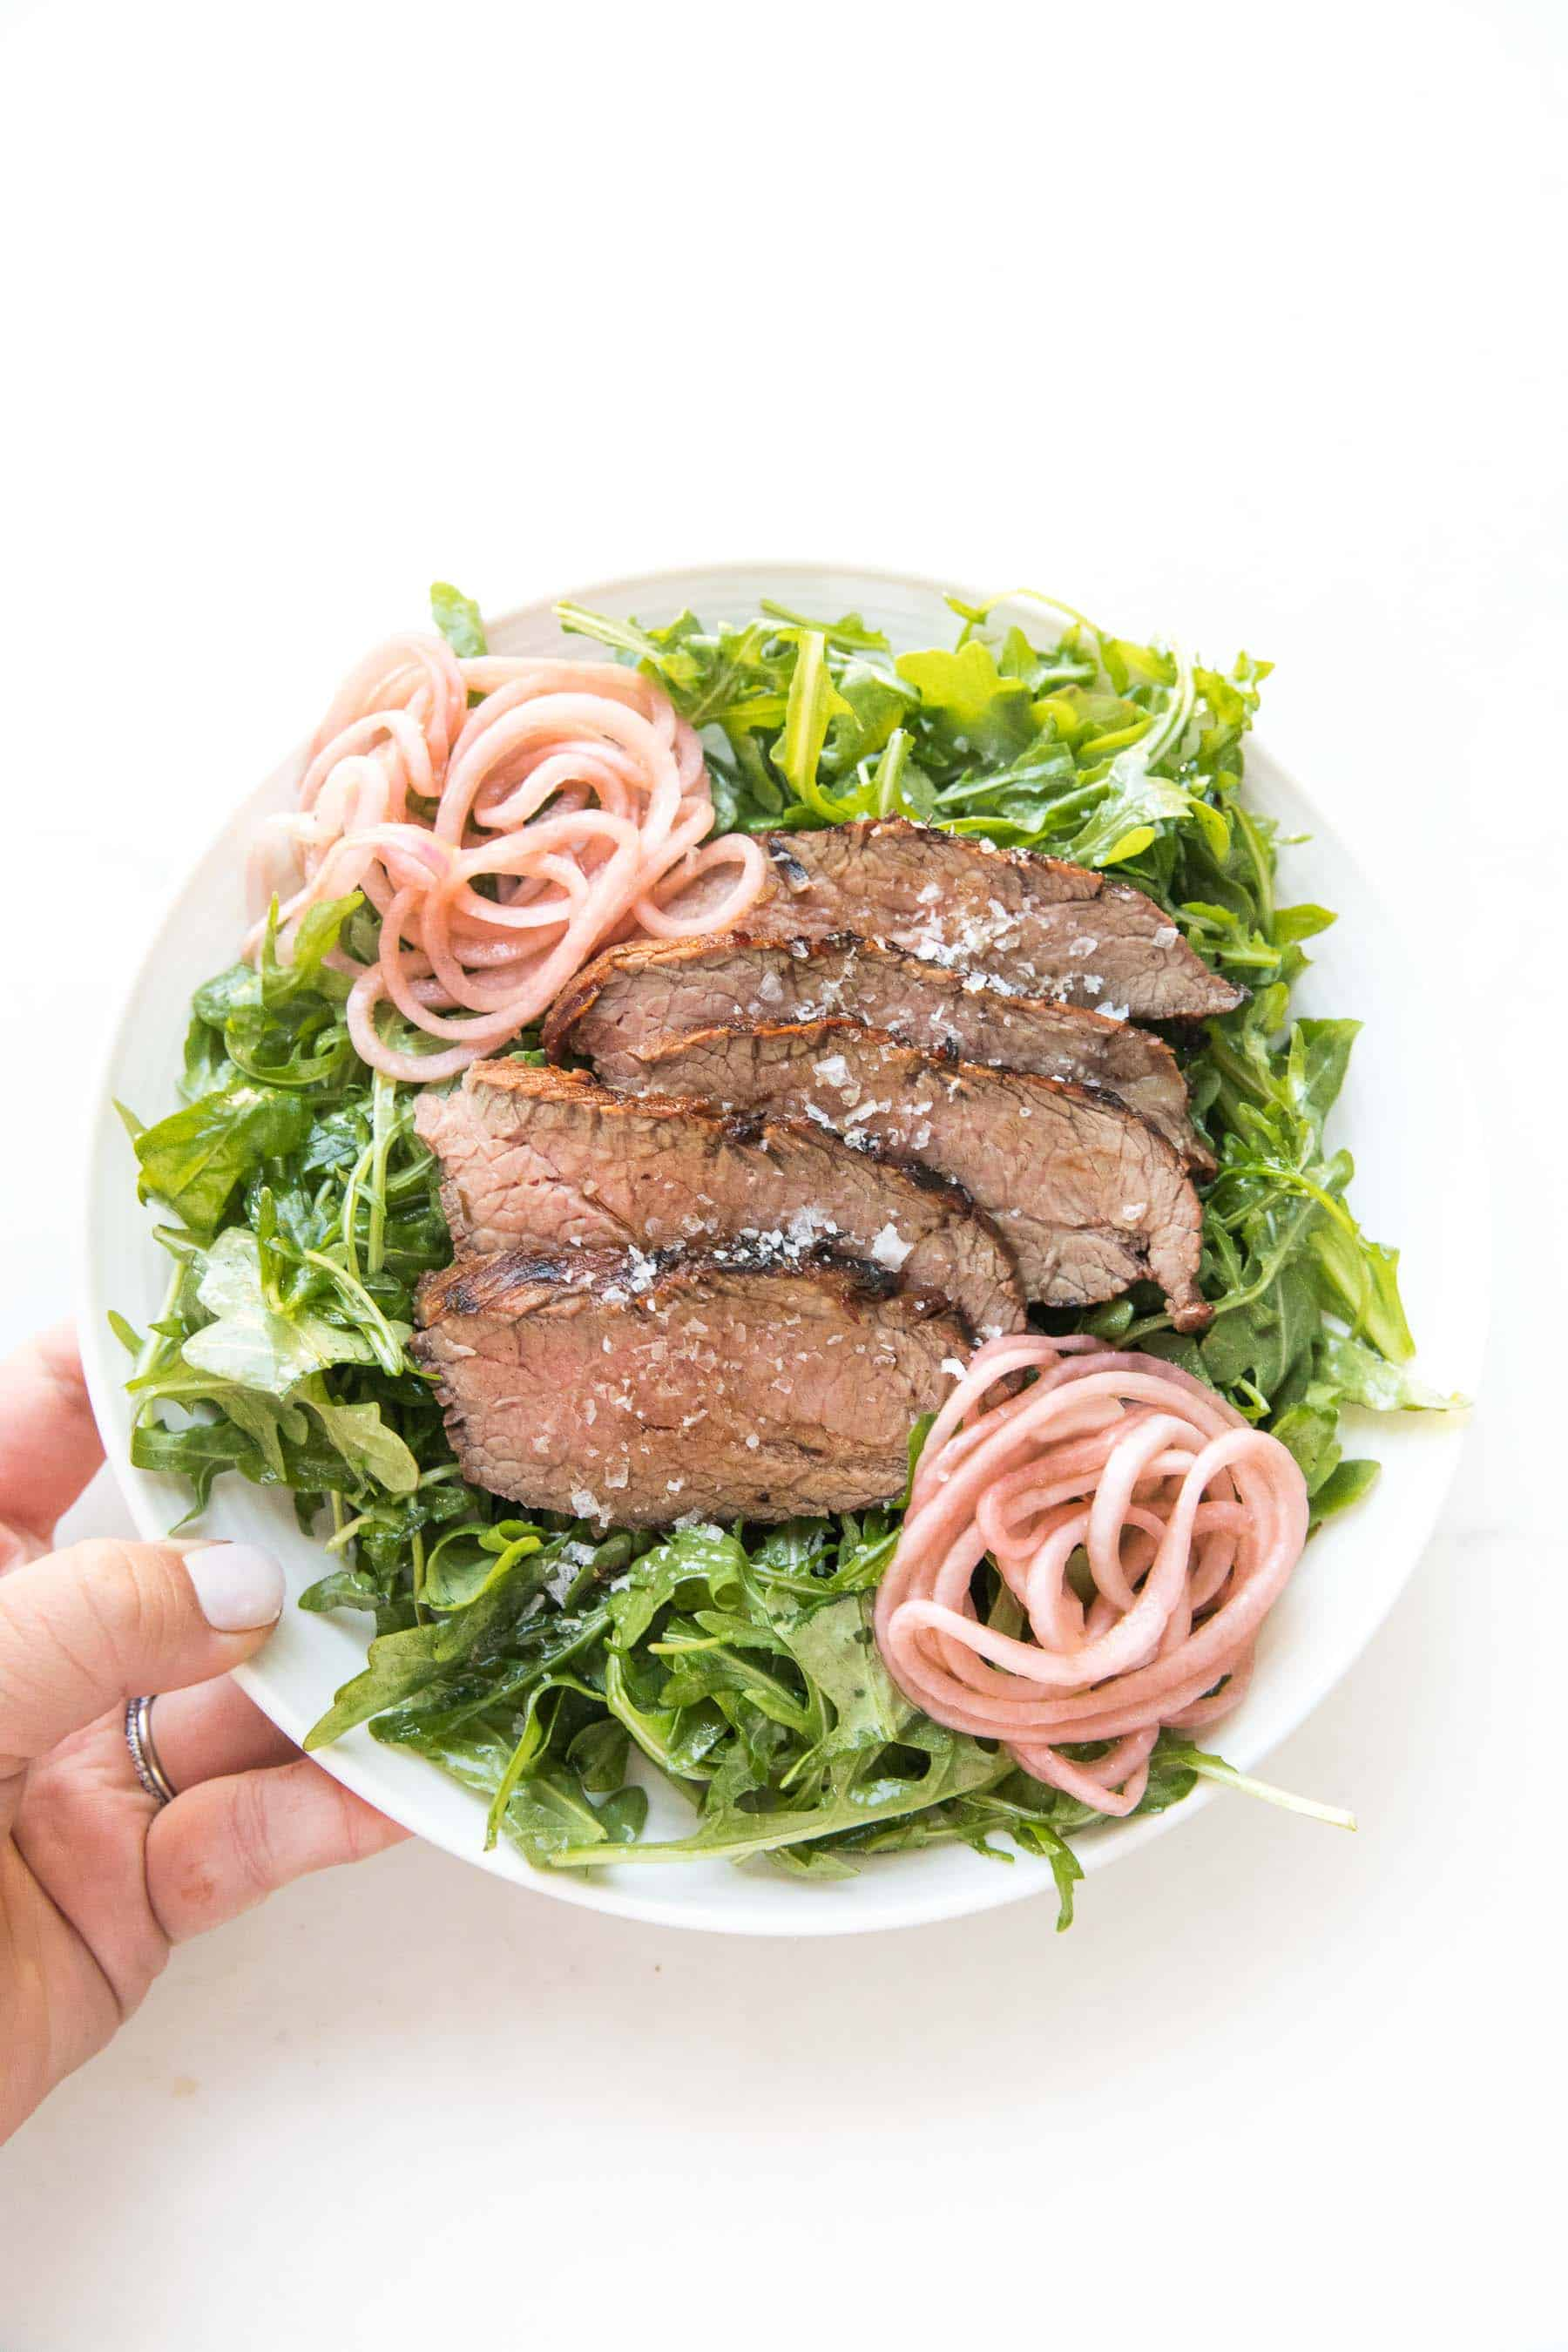 hand holding Tri tip arugula salad with pickled onions on a white plate and white background